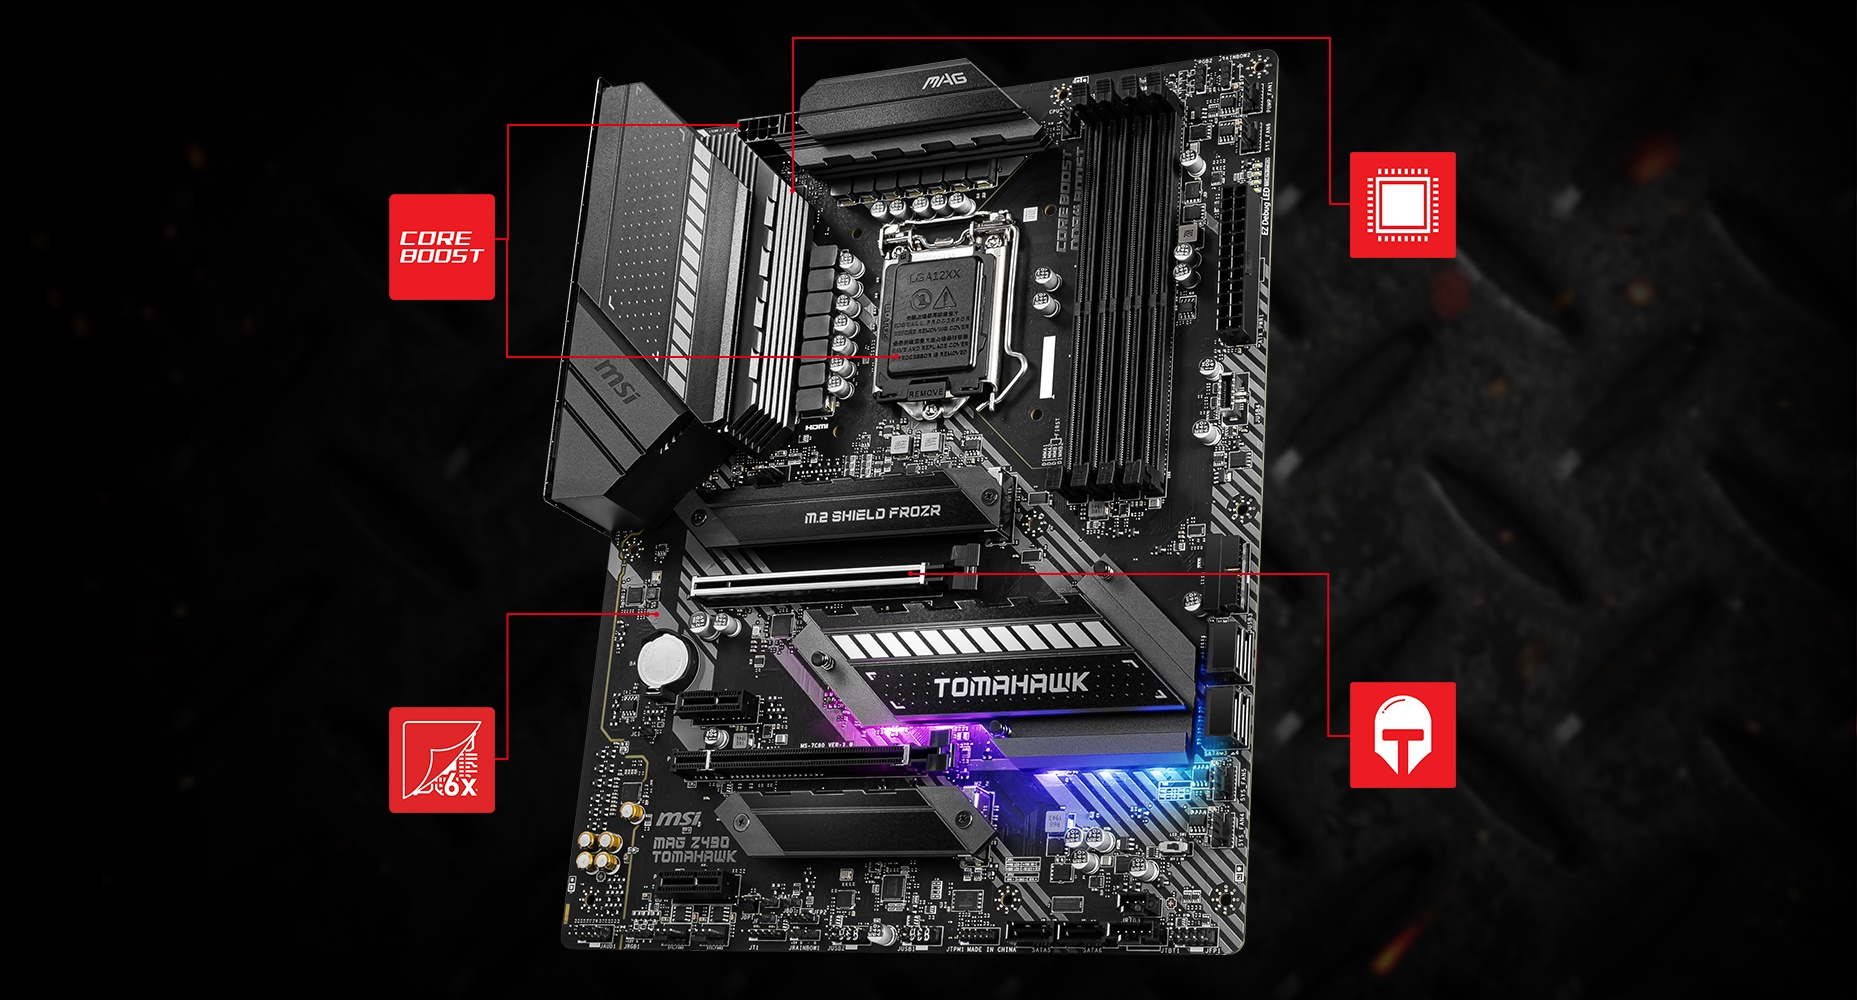 MSI MAG Z490 TOMAHAWK CORNERSTONE overview